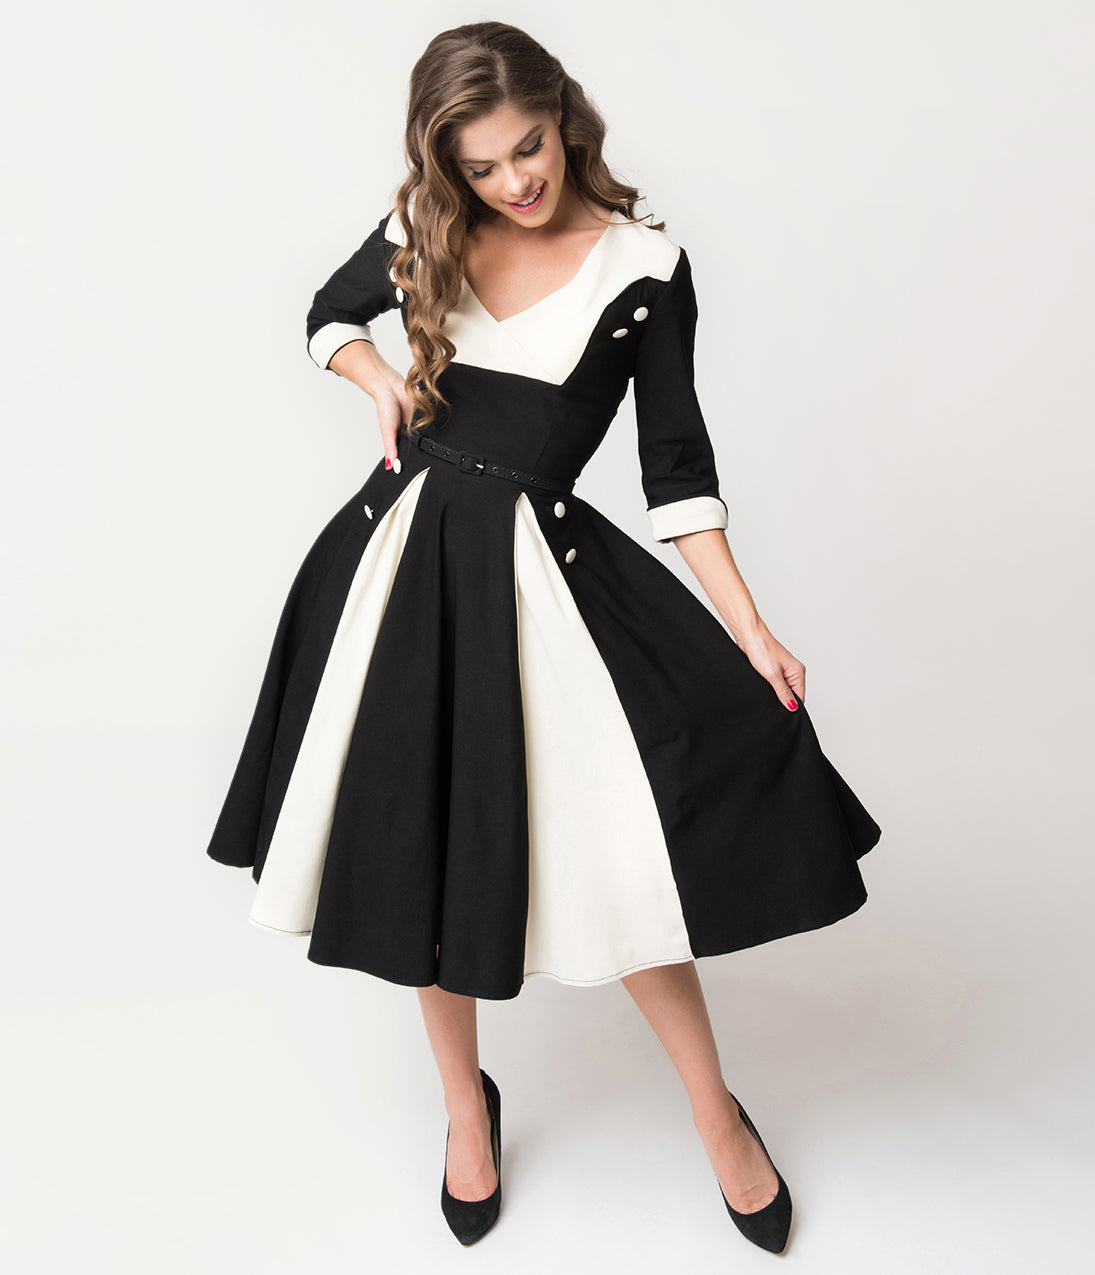 1950s Dresses, 50s Dresses | 1950s Style Dresses Unique Vintage Retro Style Black  Ivory Sleeved Lydia Swing Dress $98.00 AT vintagedancer.com